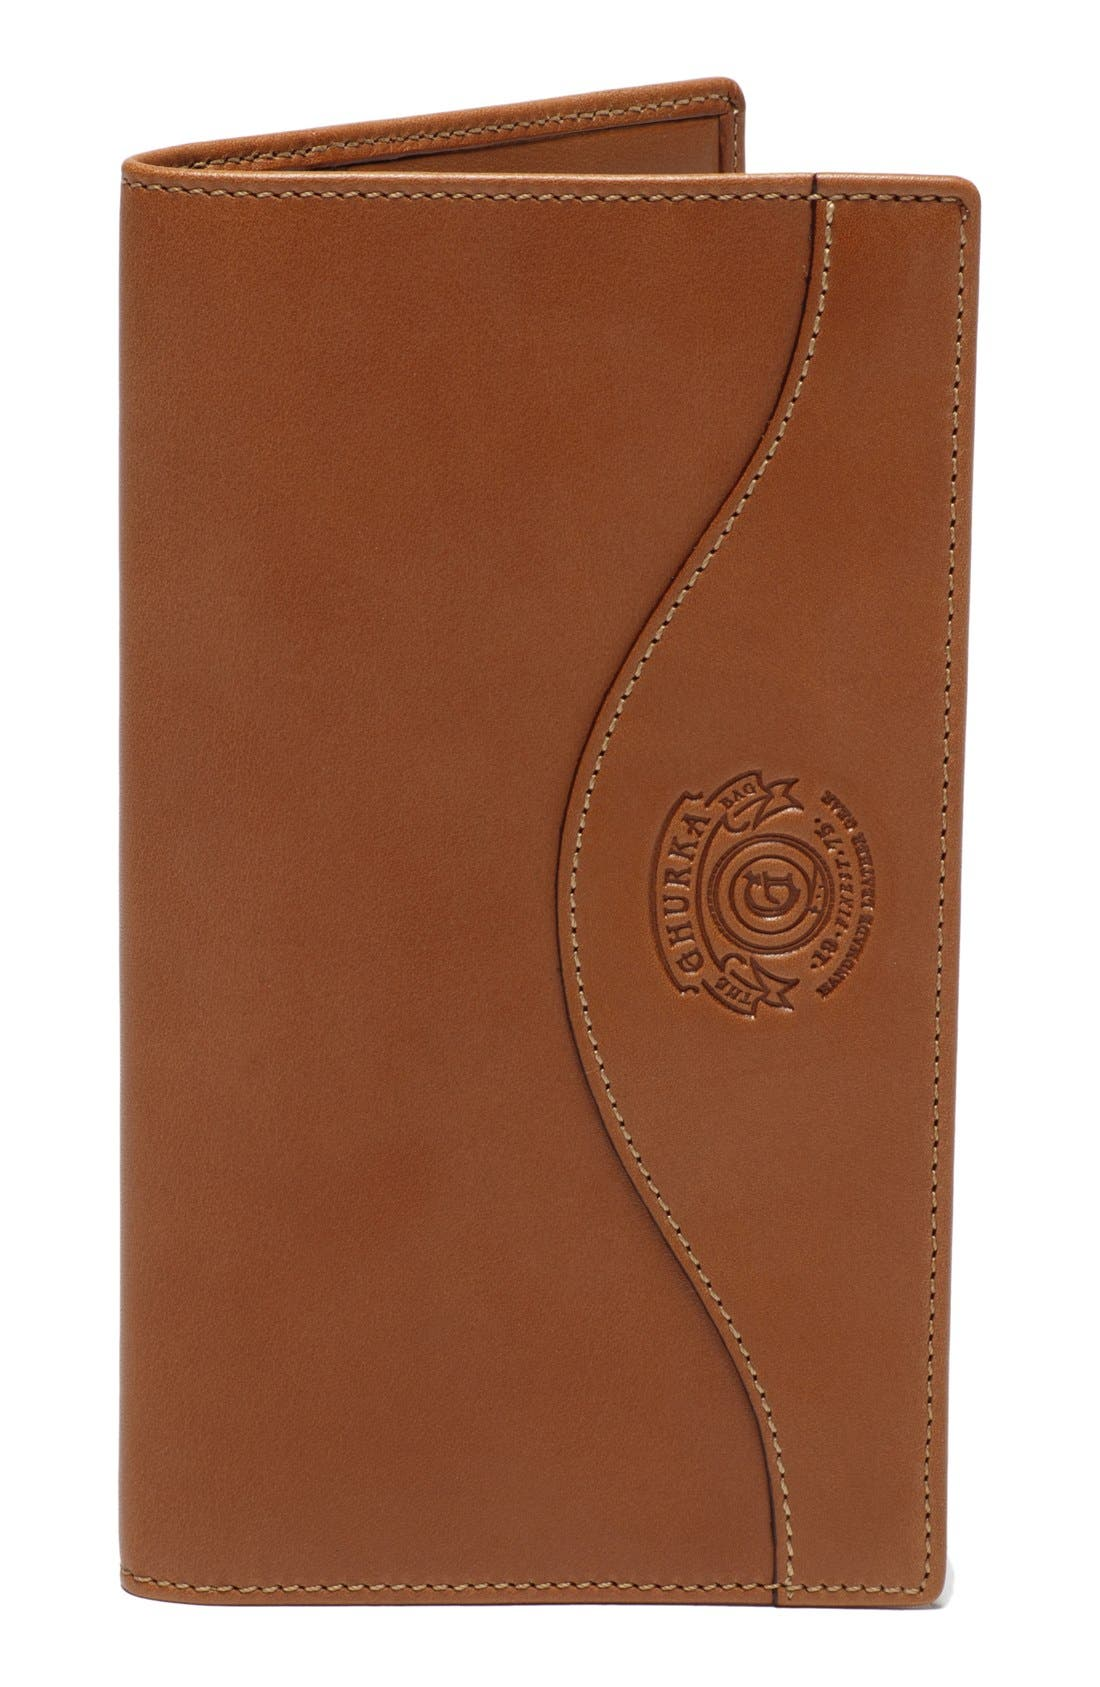 GHURKA Leather Breast Pocket Wallet